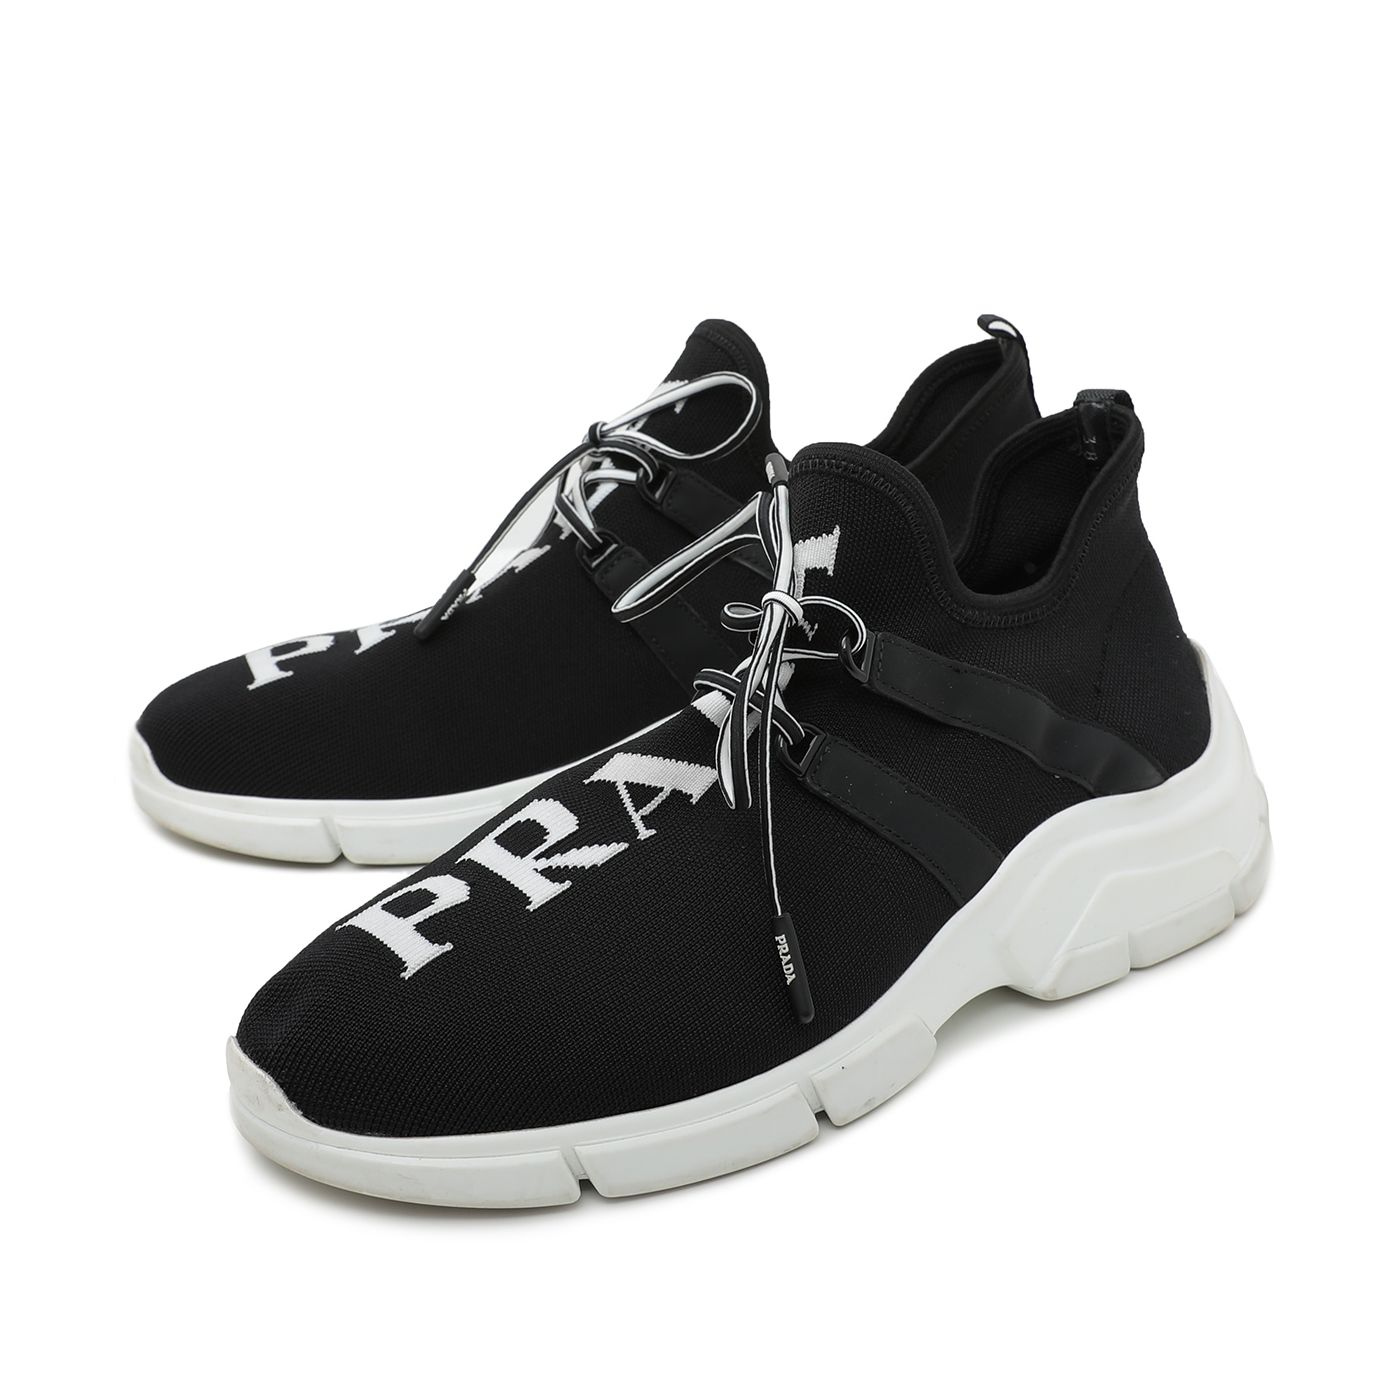 Prada Black Knit Fabric Sneakers